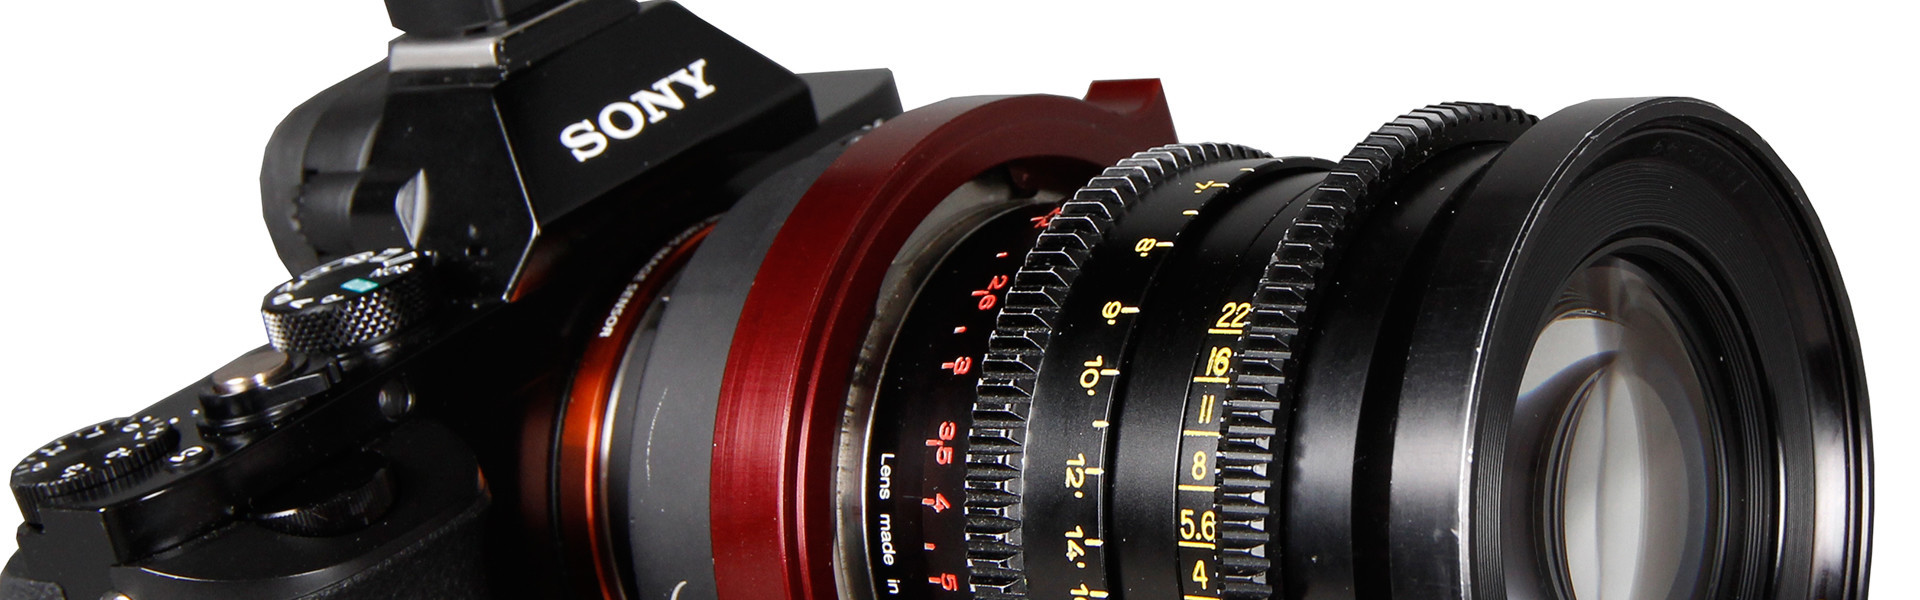 Lenses & Accessories for the Sony a7S | Tutorials & Guides